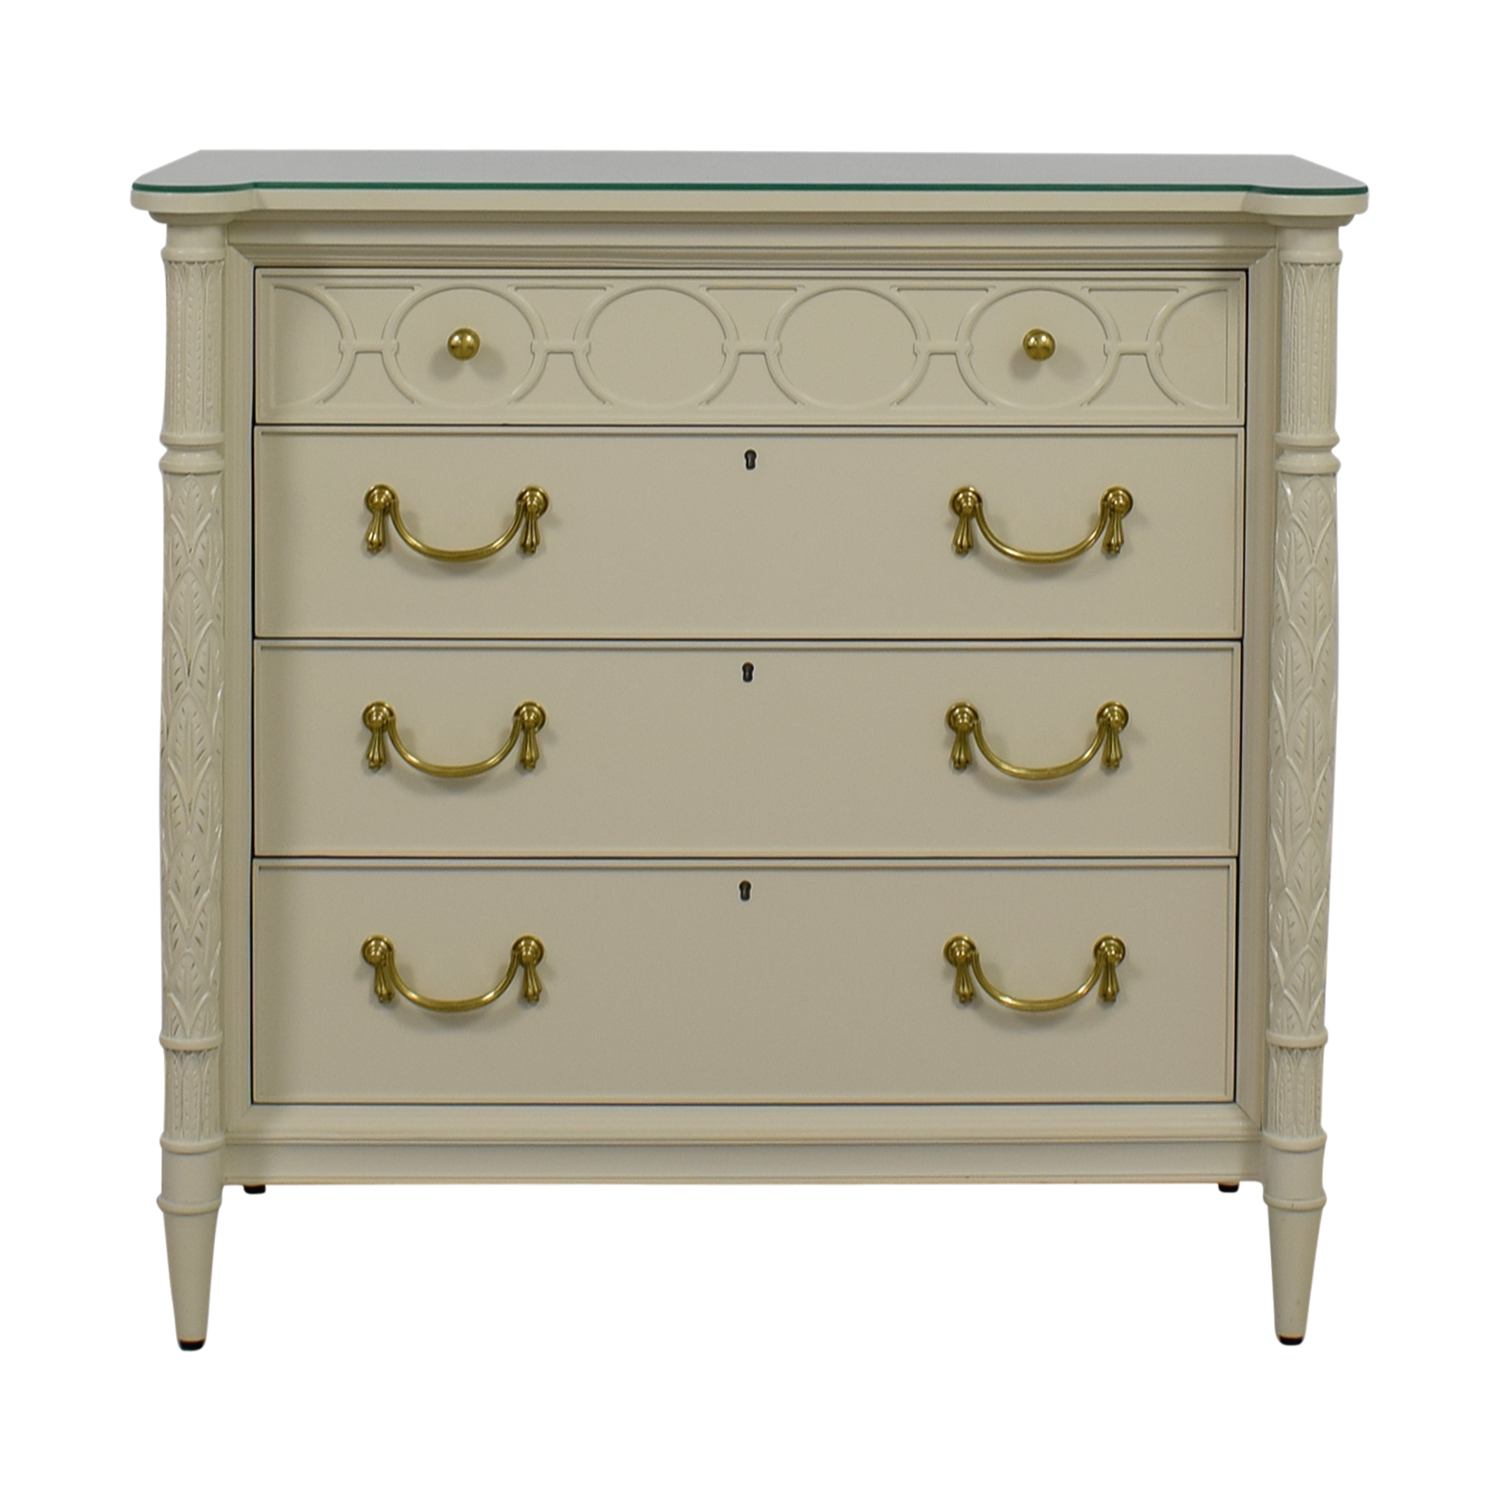 Stanley Furniture Charleston Regency King Charles Bachelor Chest / Storage